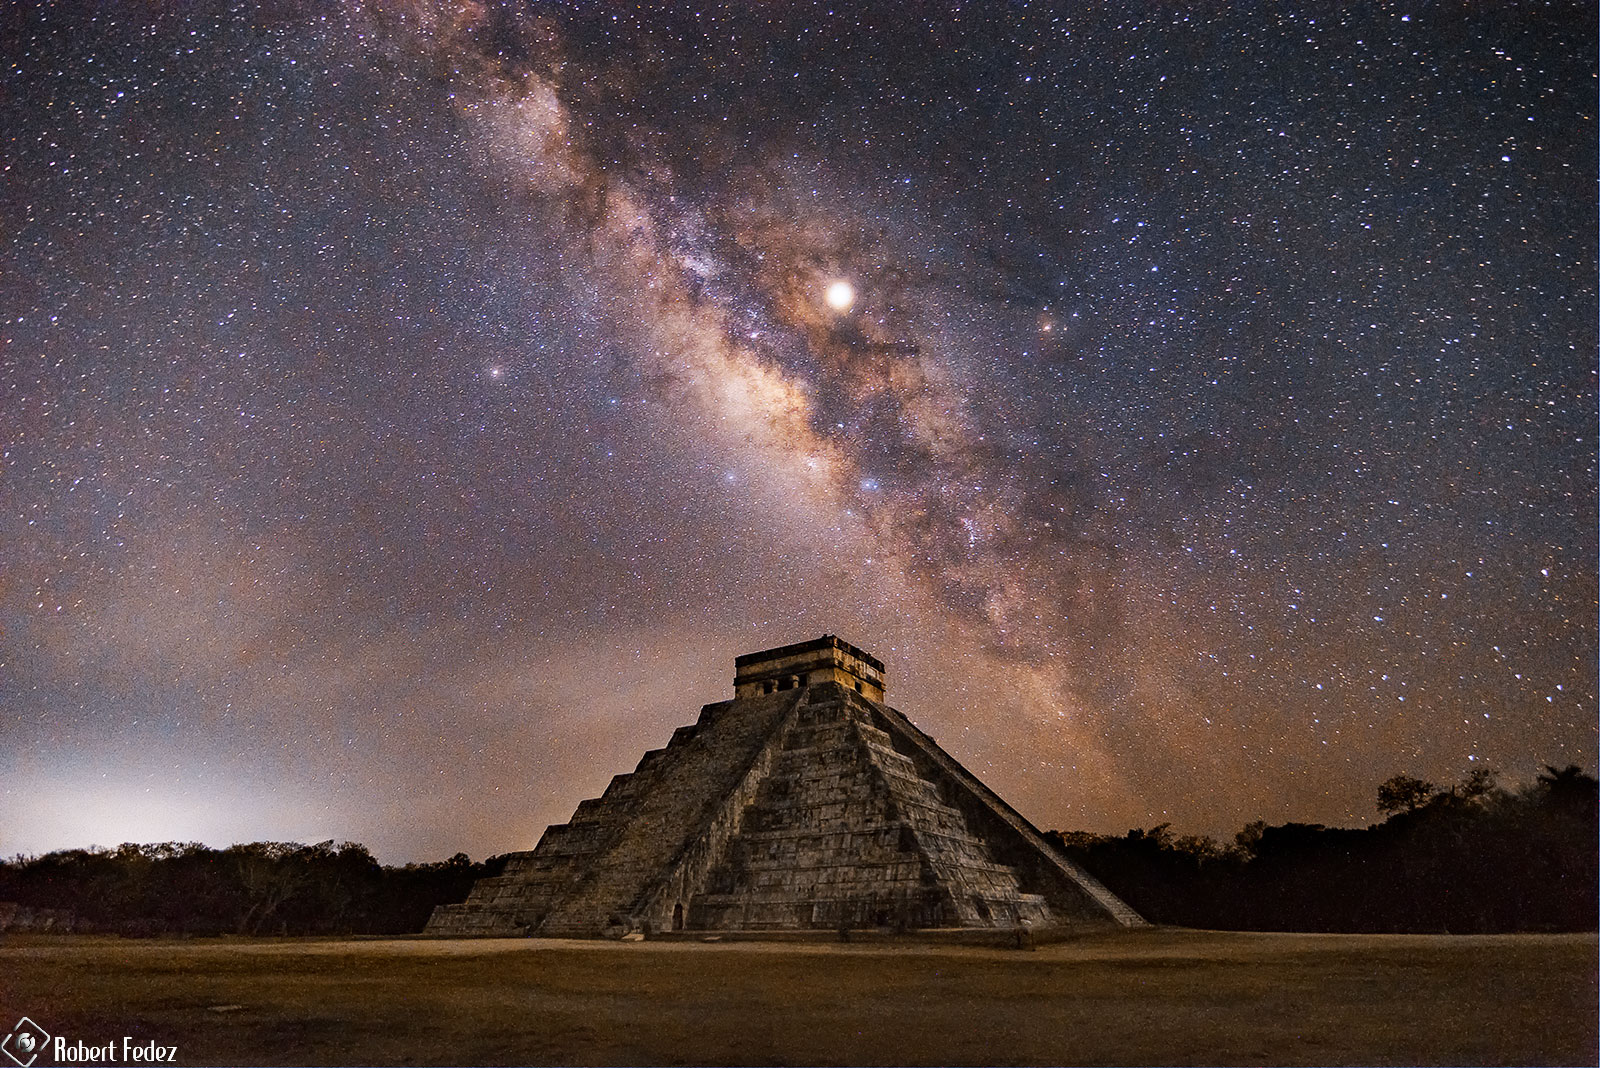 APOD: 2019 June 17 - Milky Way over Pyramid of the Feathered Serpent